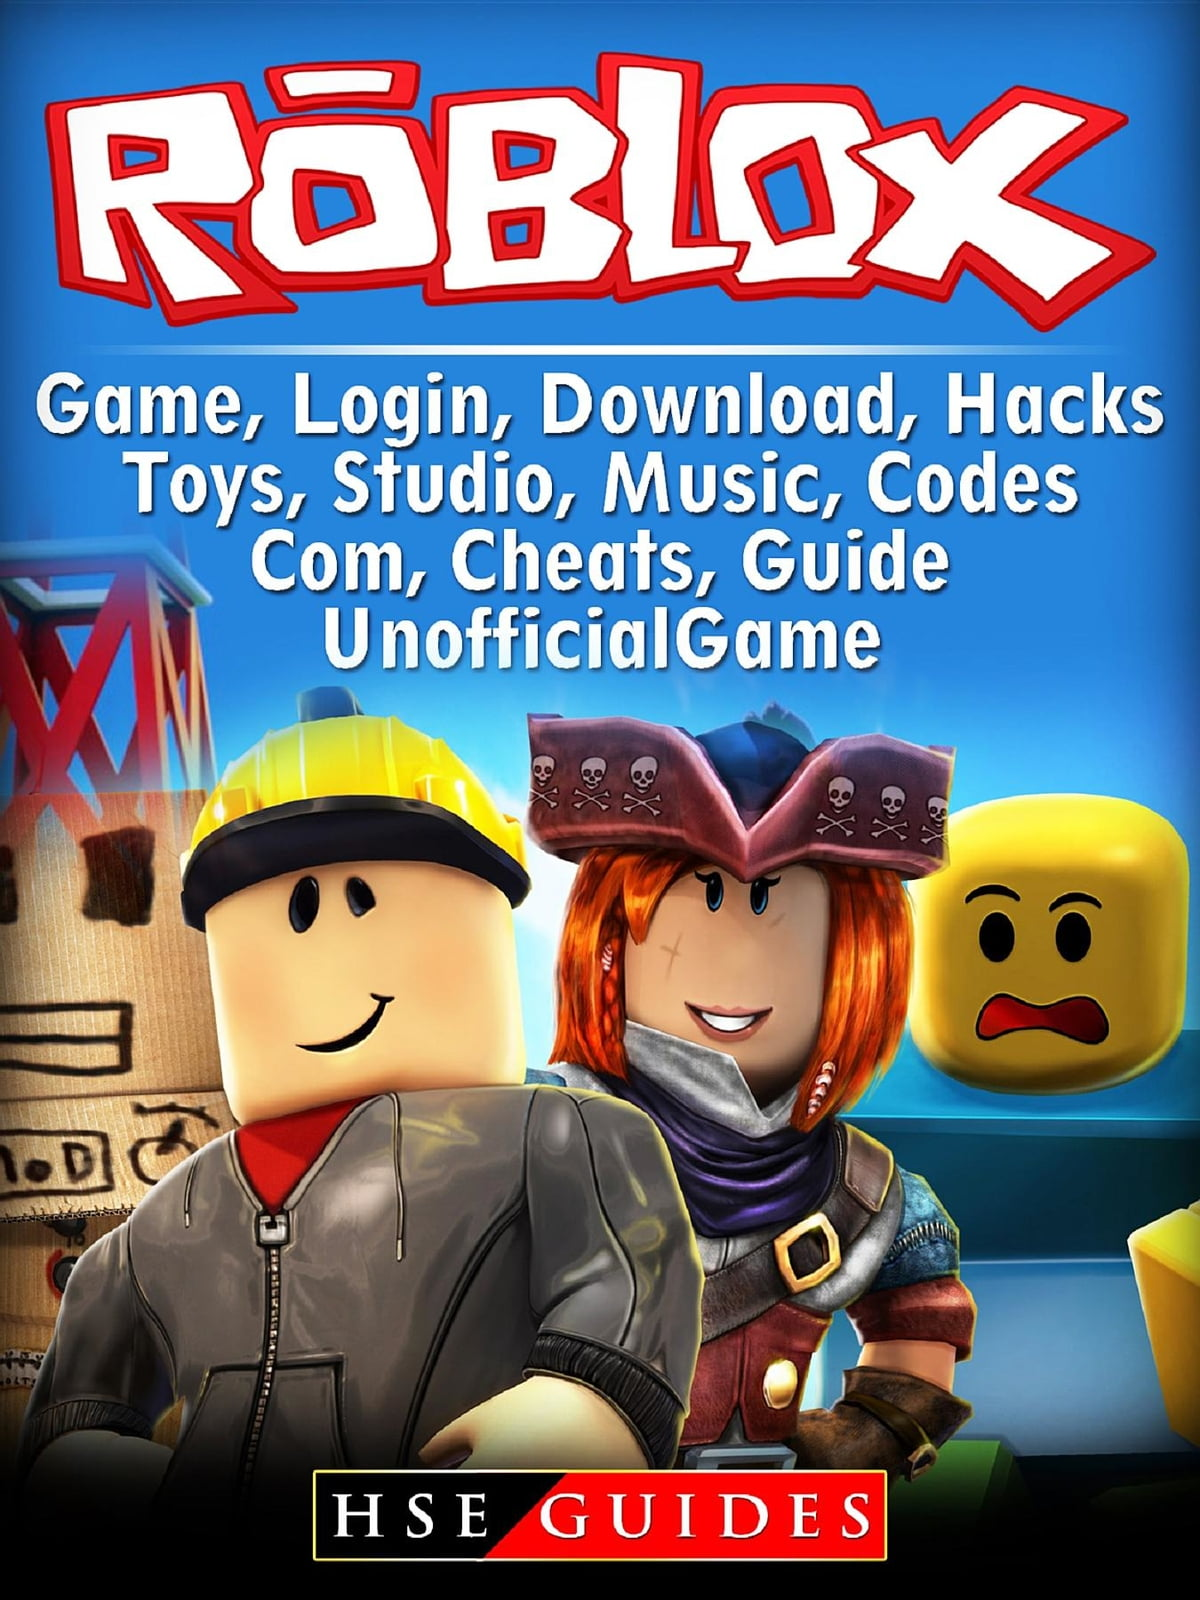 Roblox Game, Login, Download, Hacks, Toys, Studio, Music, Codes, Com,  Cheats Guide Unofficial eBook by HSE Guides - Rakuten Kobo